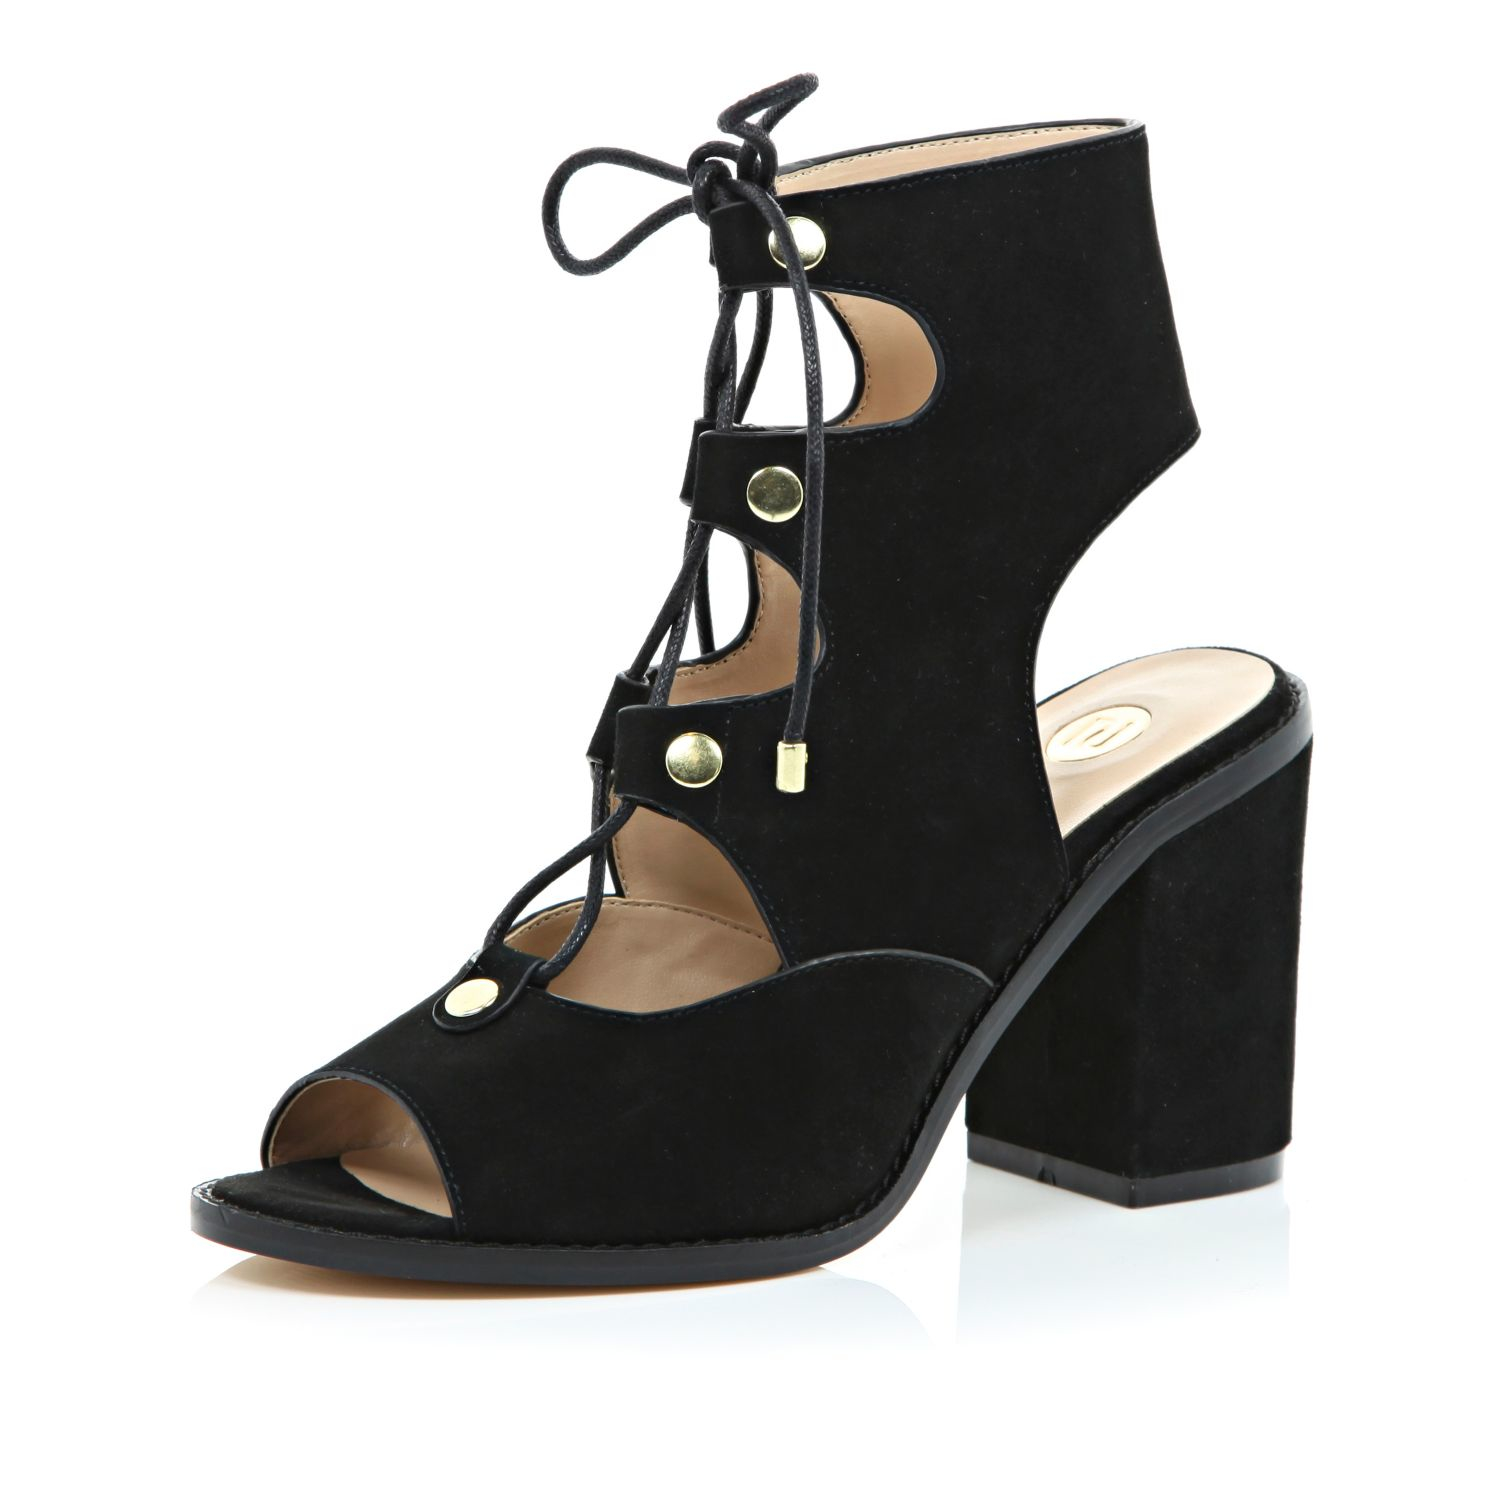 From casual flat sandals to chic heeled sandals, you'll love these exclusive styles and on-trend designs. Free shipping + returns! Women's Sandals - Platform, Gladiator, Wedge - Lace Up Sandals.